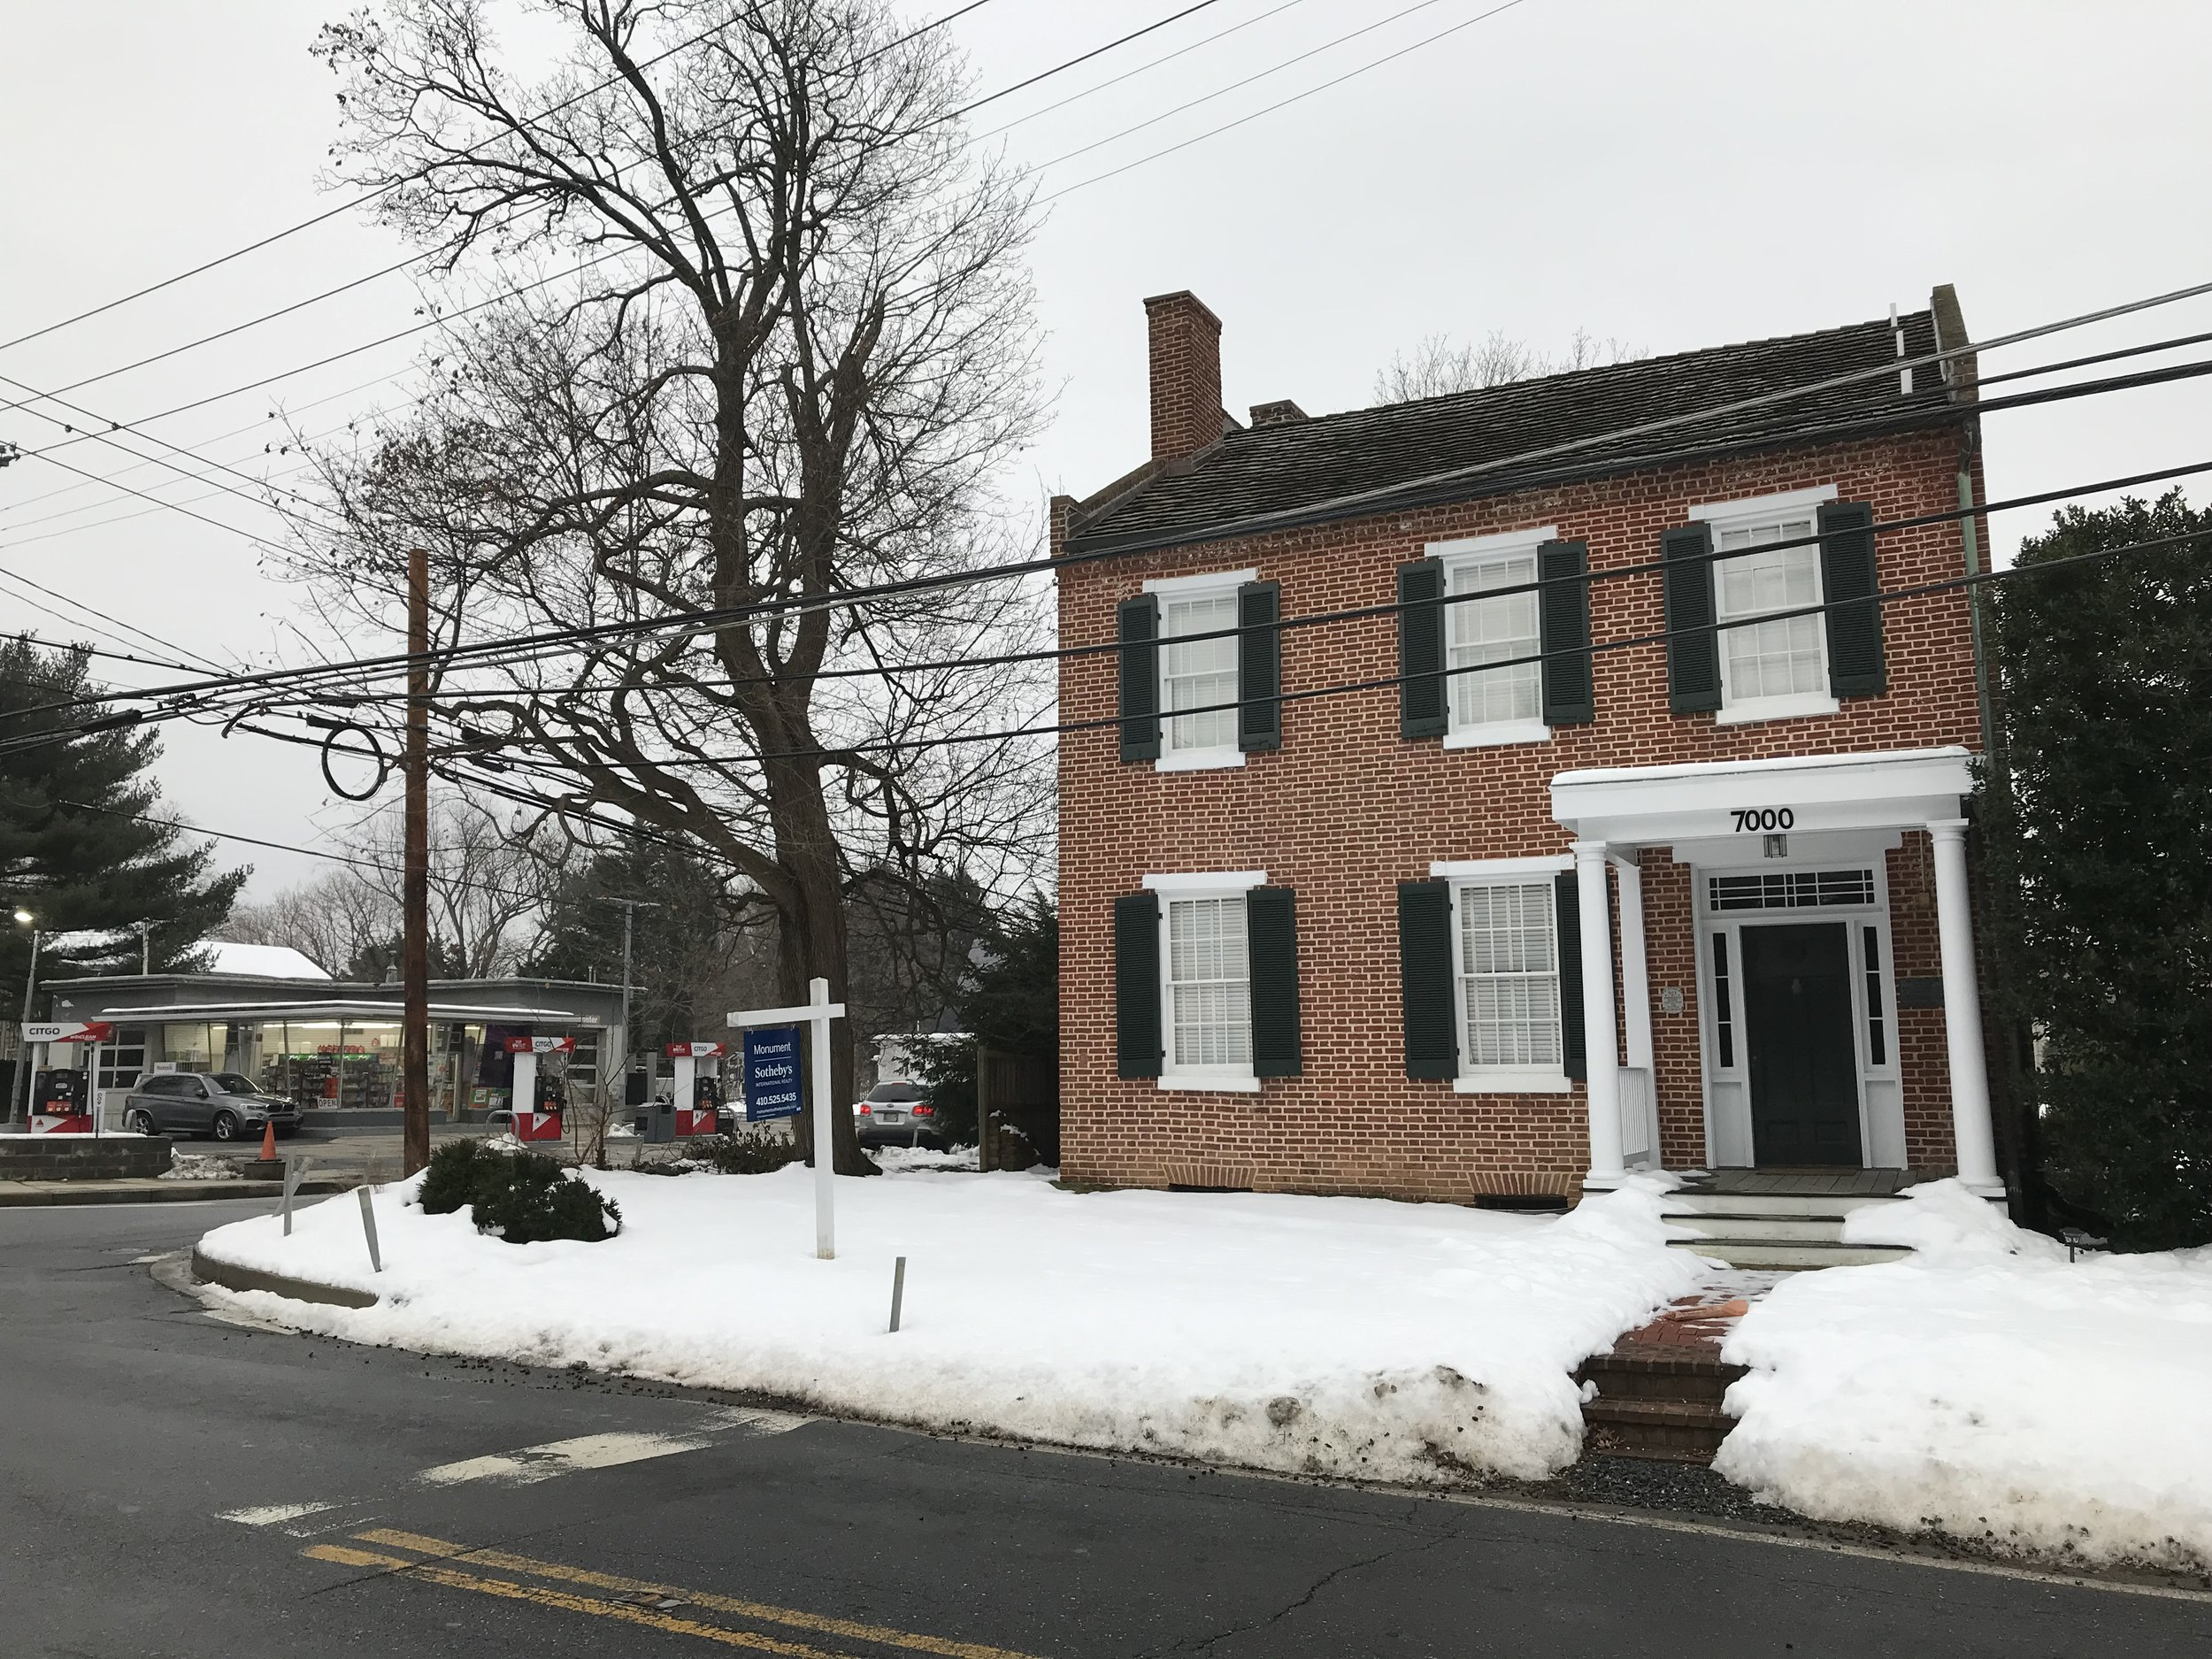 Front of the Revolutionary War-era house, now across the street from a modern gas station.